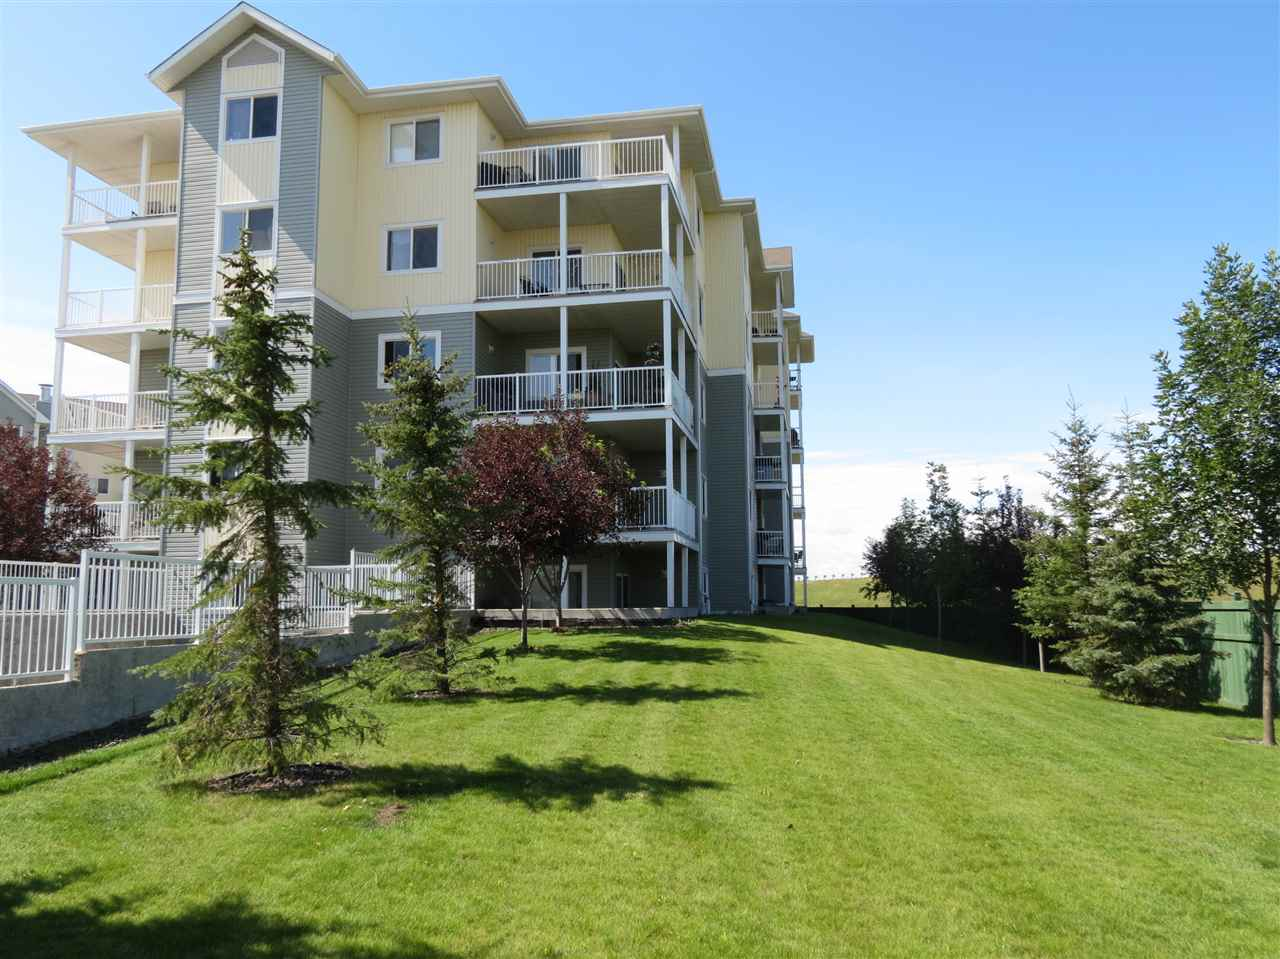 Photo 4: 106 9910 107 Street: Morinville Condo for sale : MLS(r) # E4040993